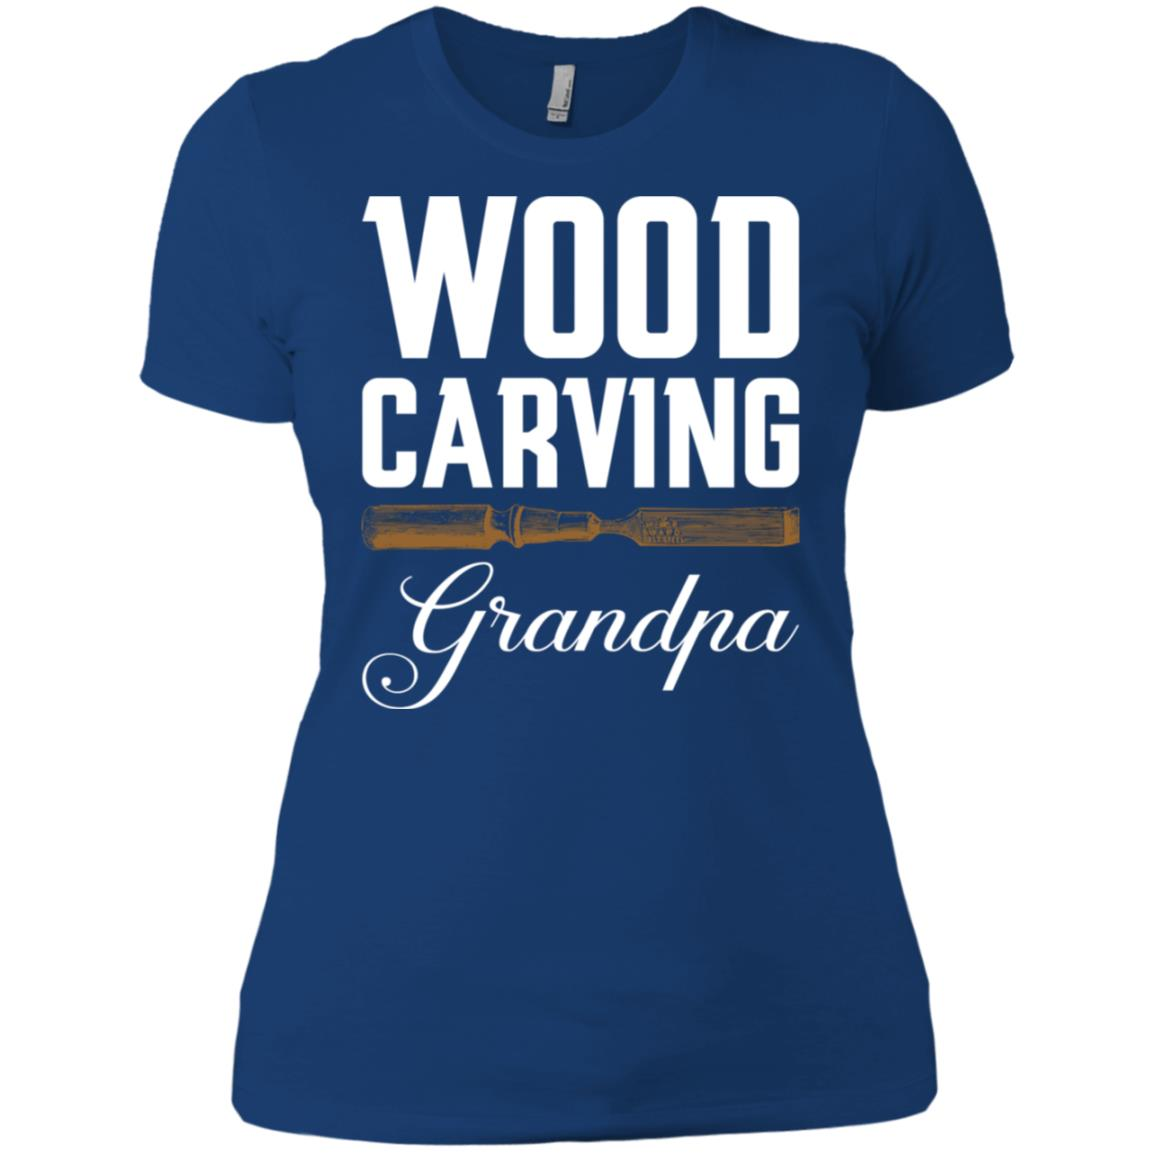 Wood Carving Grandpa Woodworking Women Short Sleeve